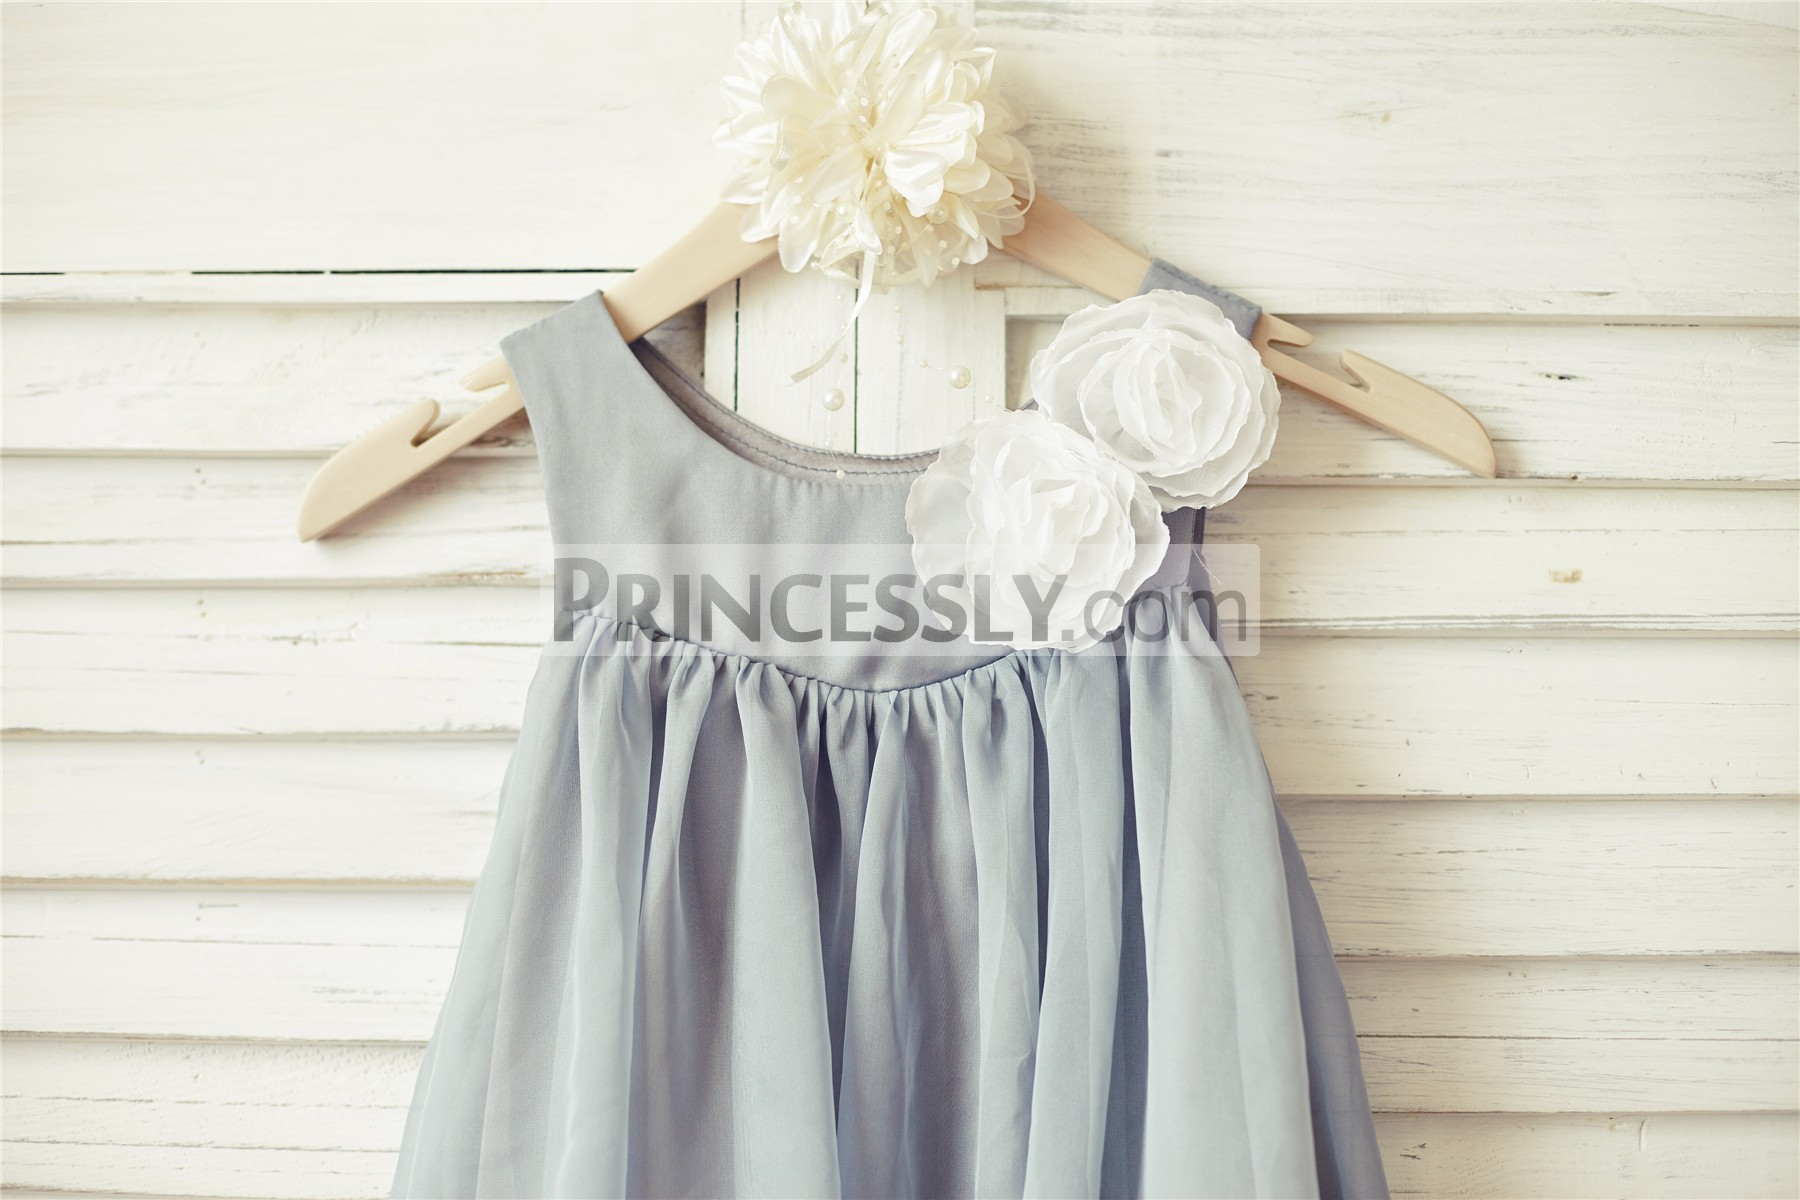 Scoop neckline sleeveless bodice with handmade ivory flowers